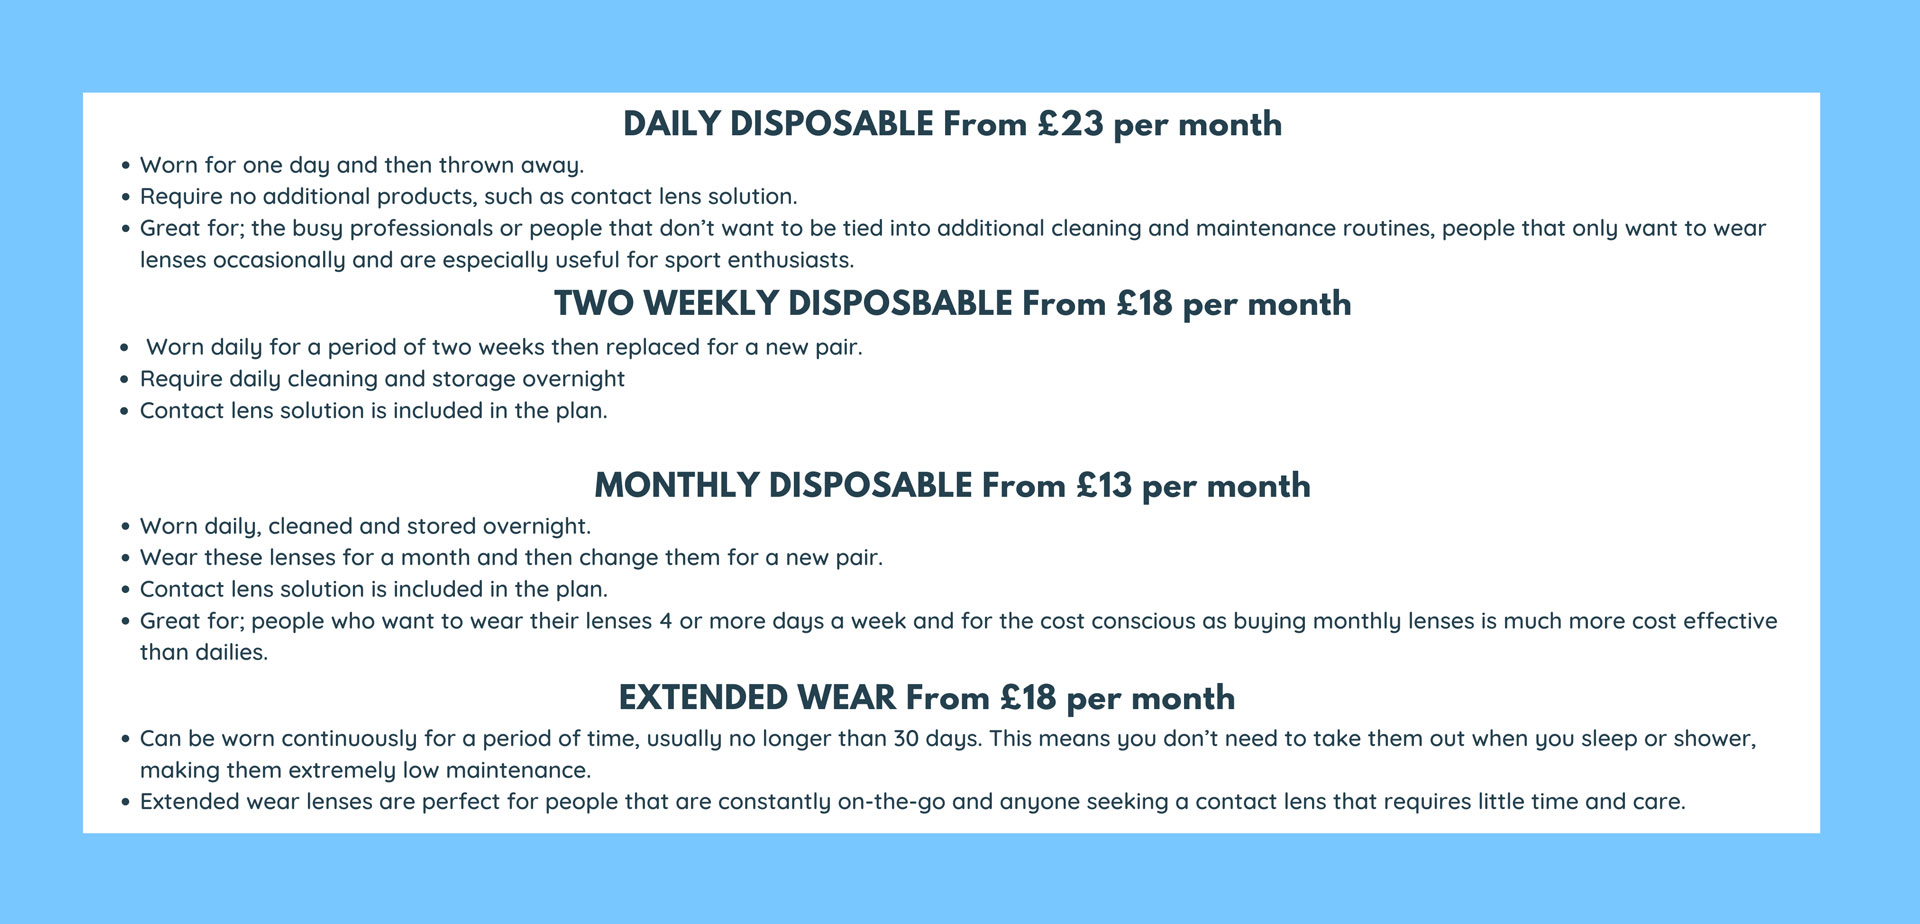 image showing different plans with rates